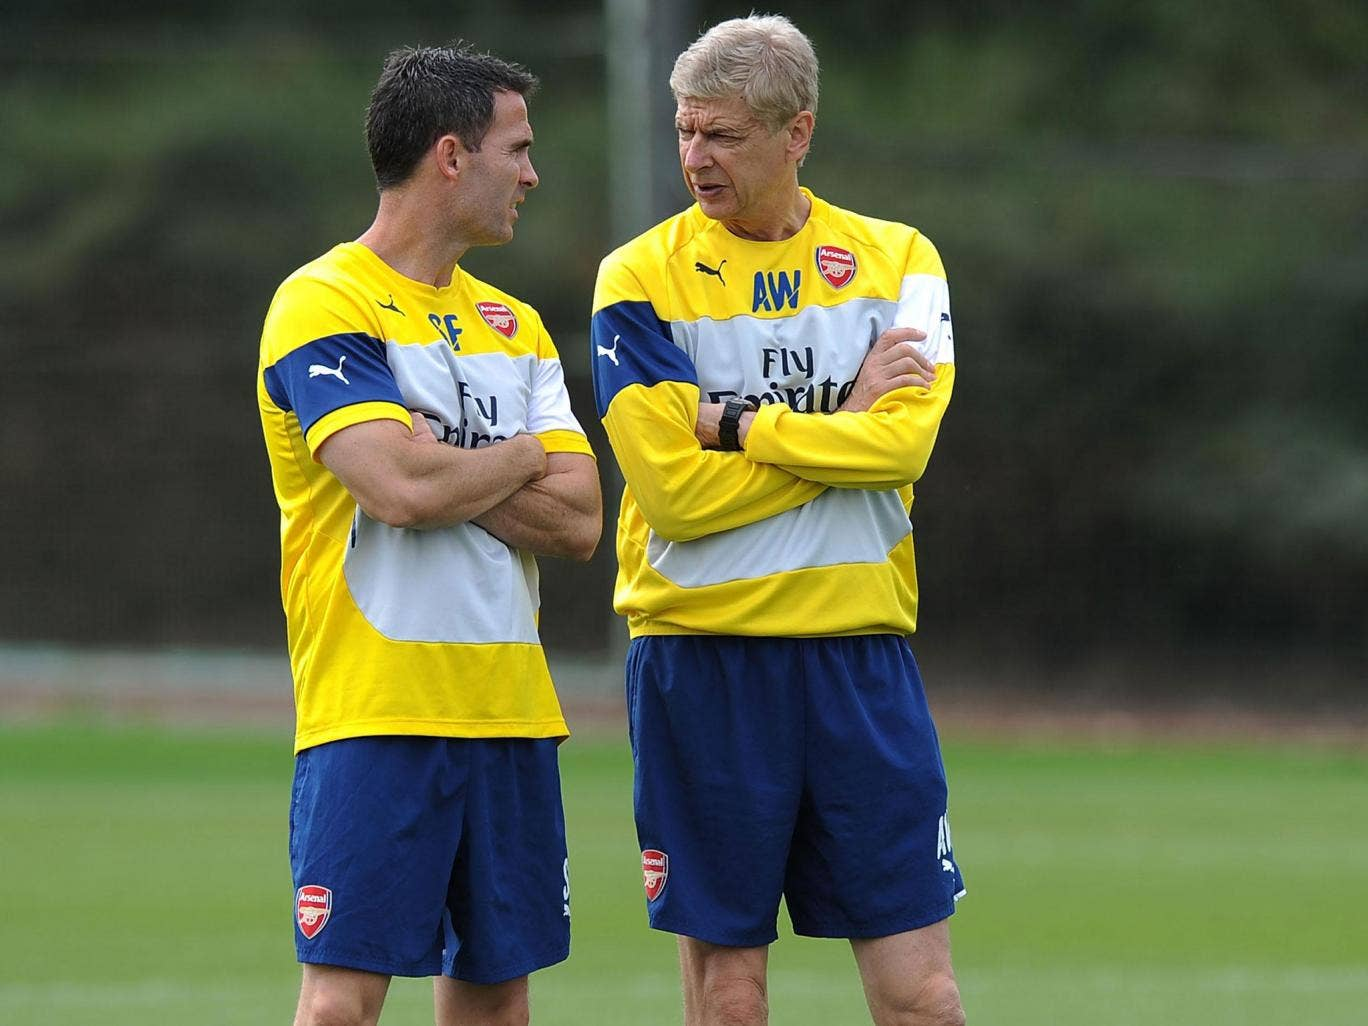 Shad Forsythe (right) converses with Arsenal manager Arsene Wenger during the Gunners' pre-season training